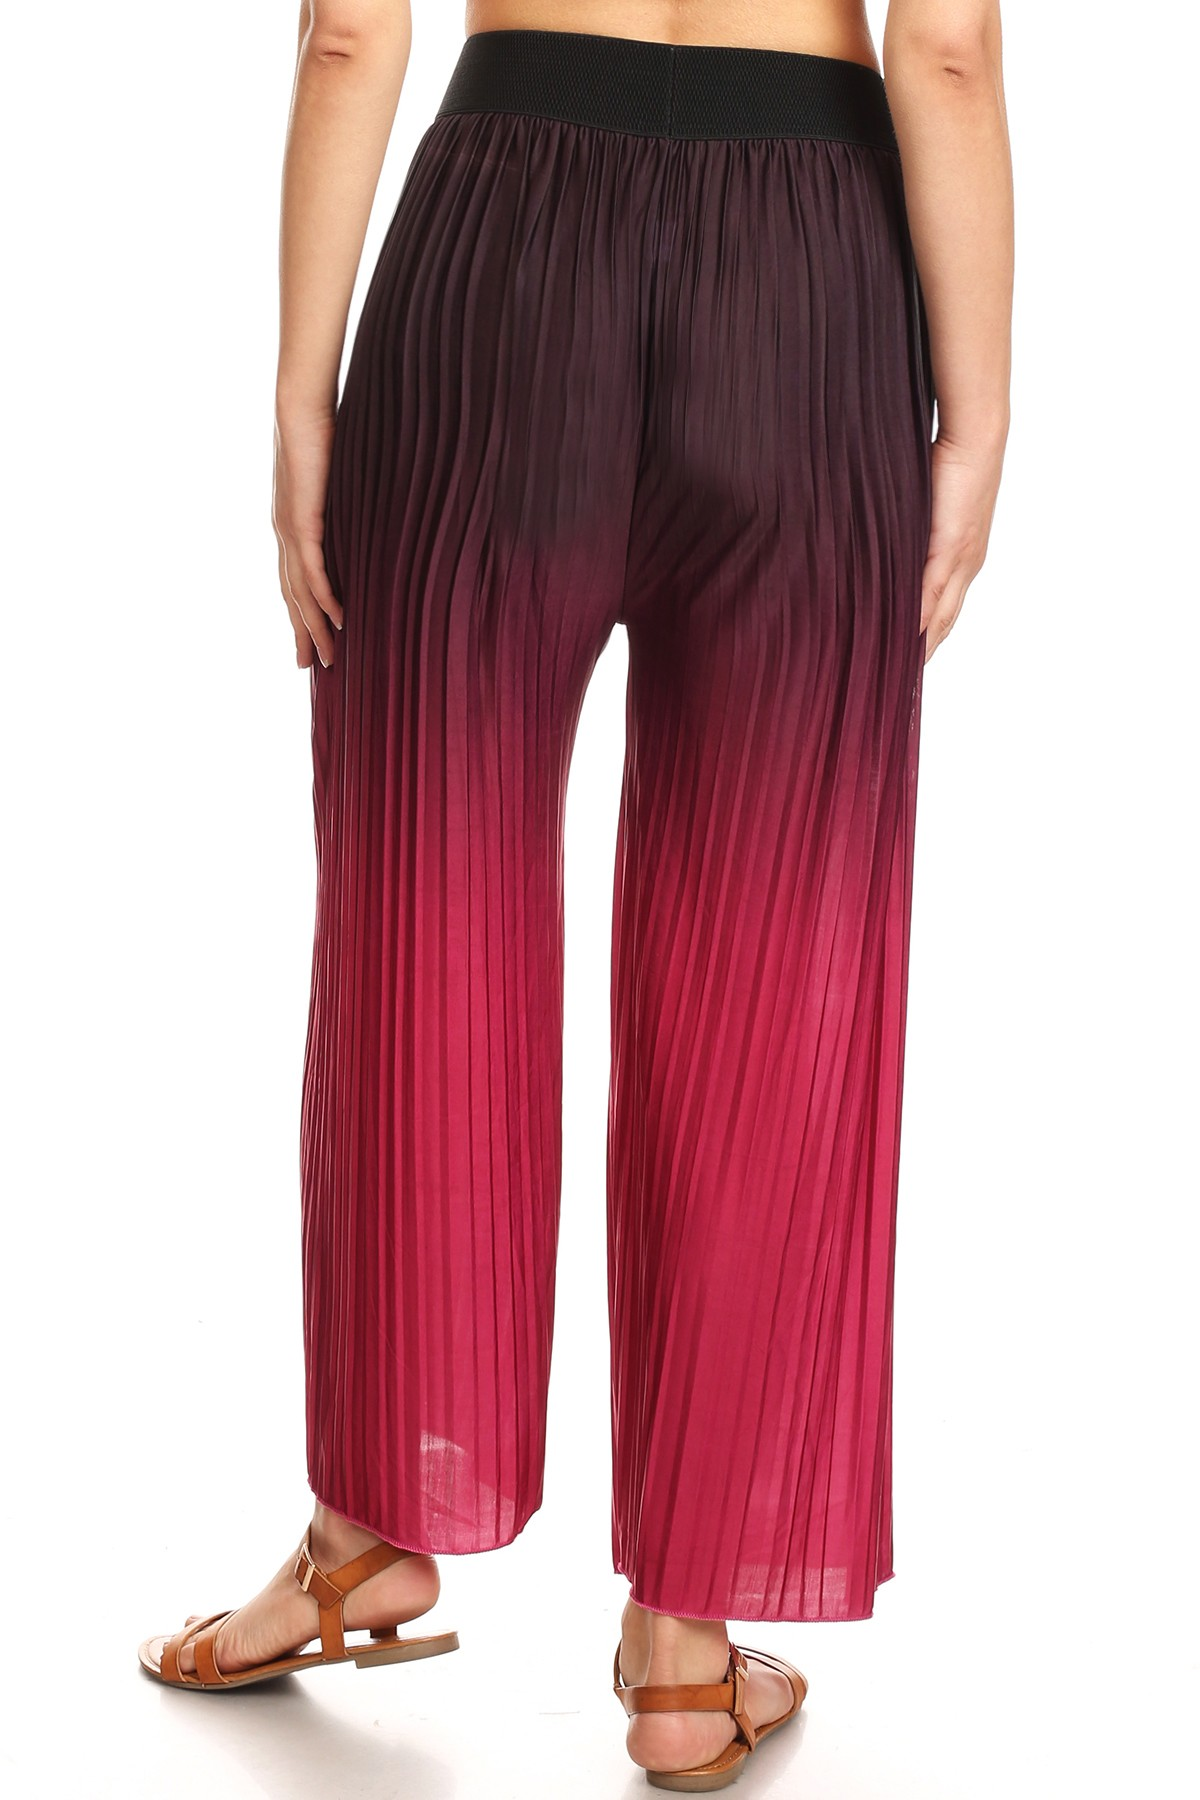 Find great deals on eBay for new york and company wide leg pants. Shop with confidence.